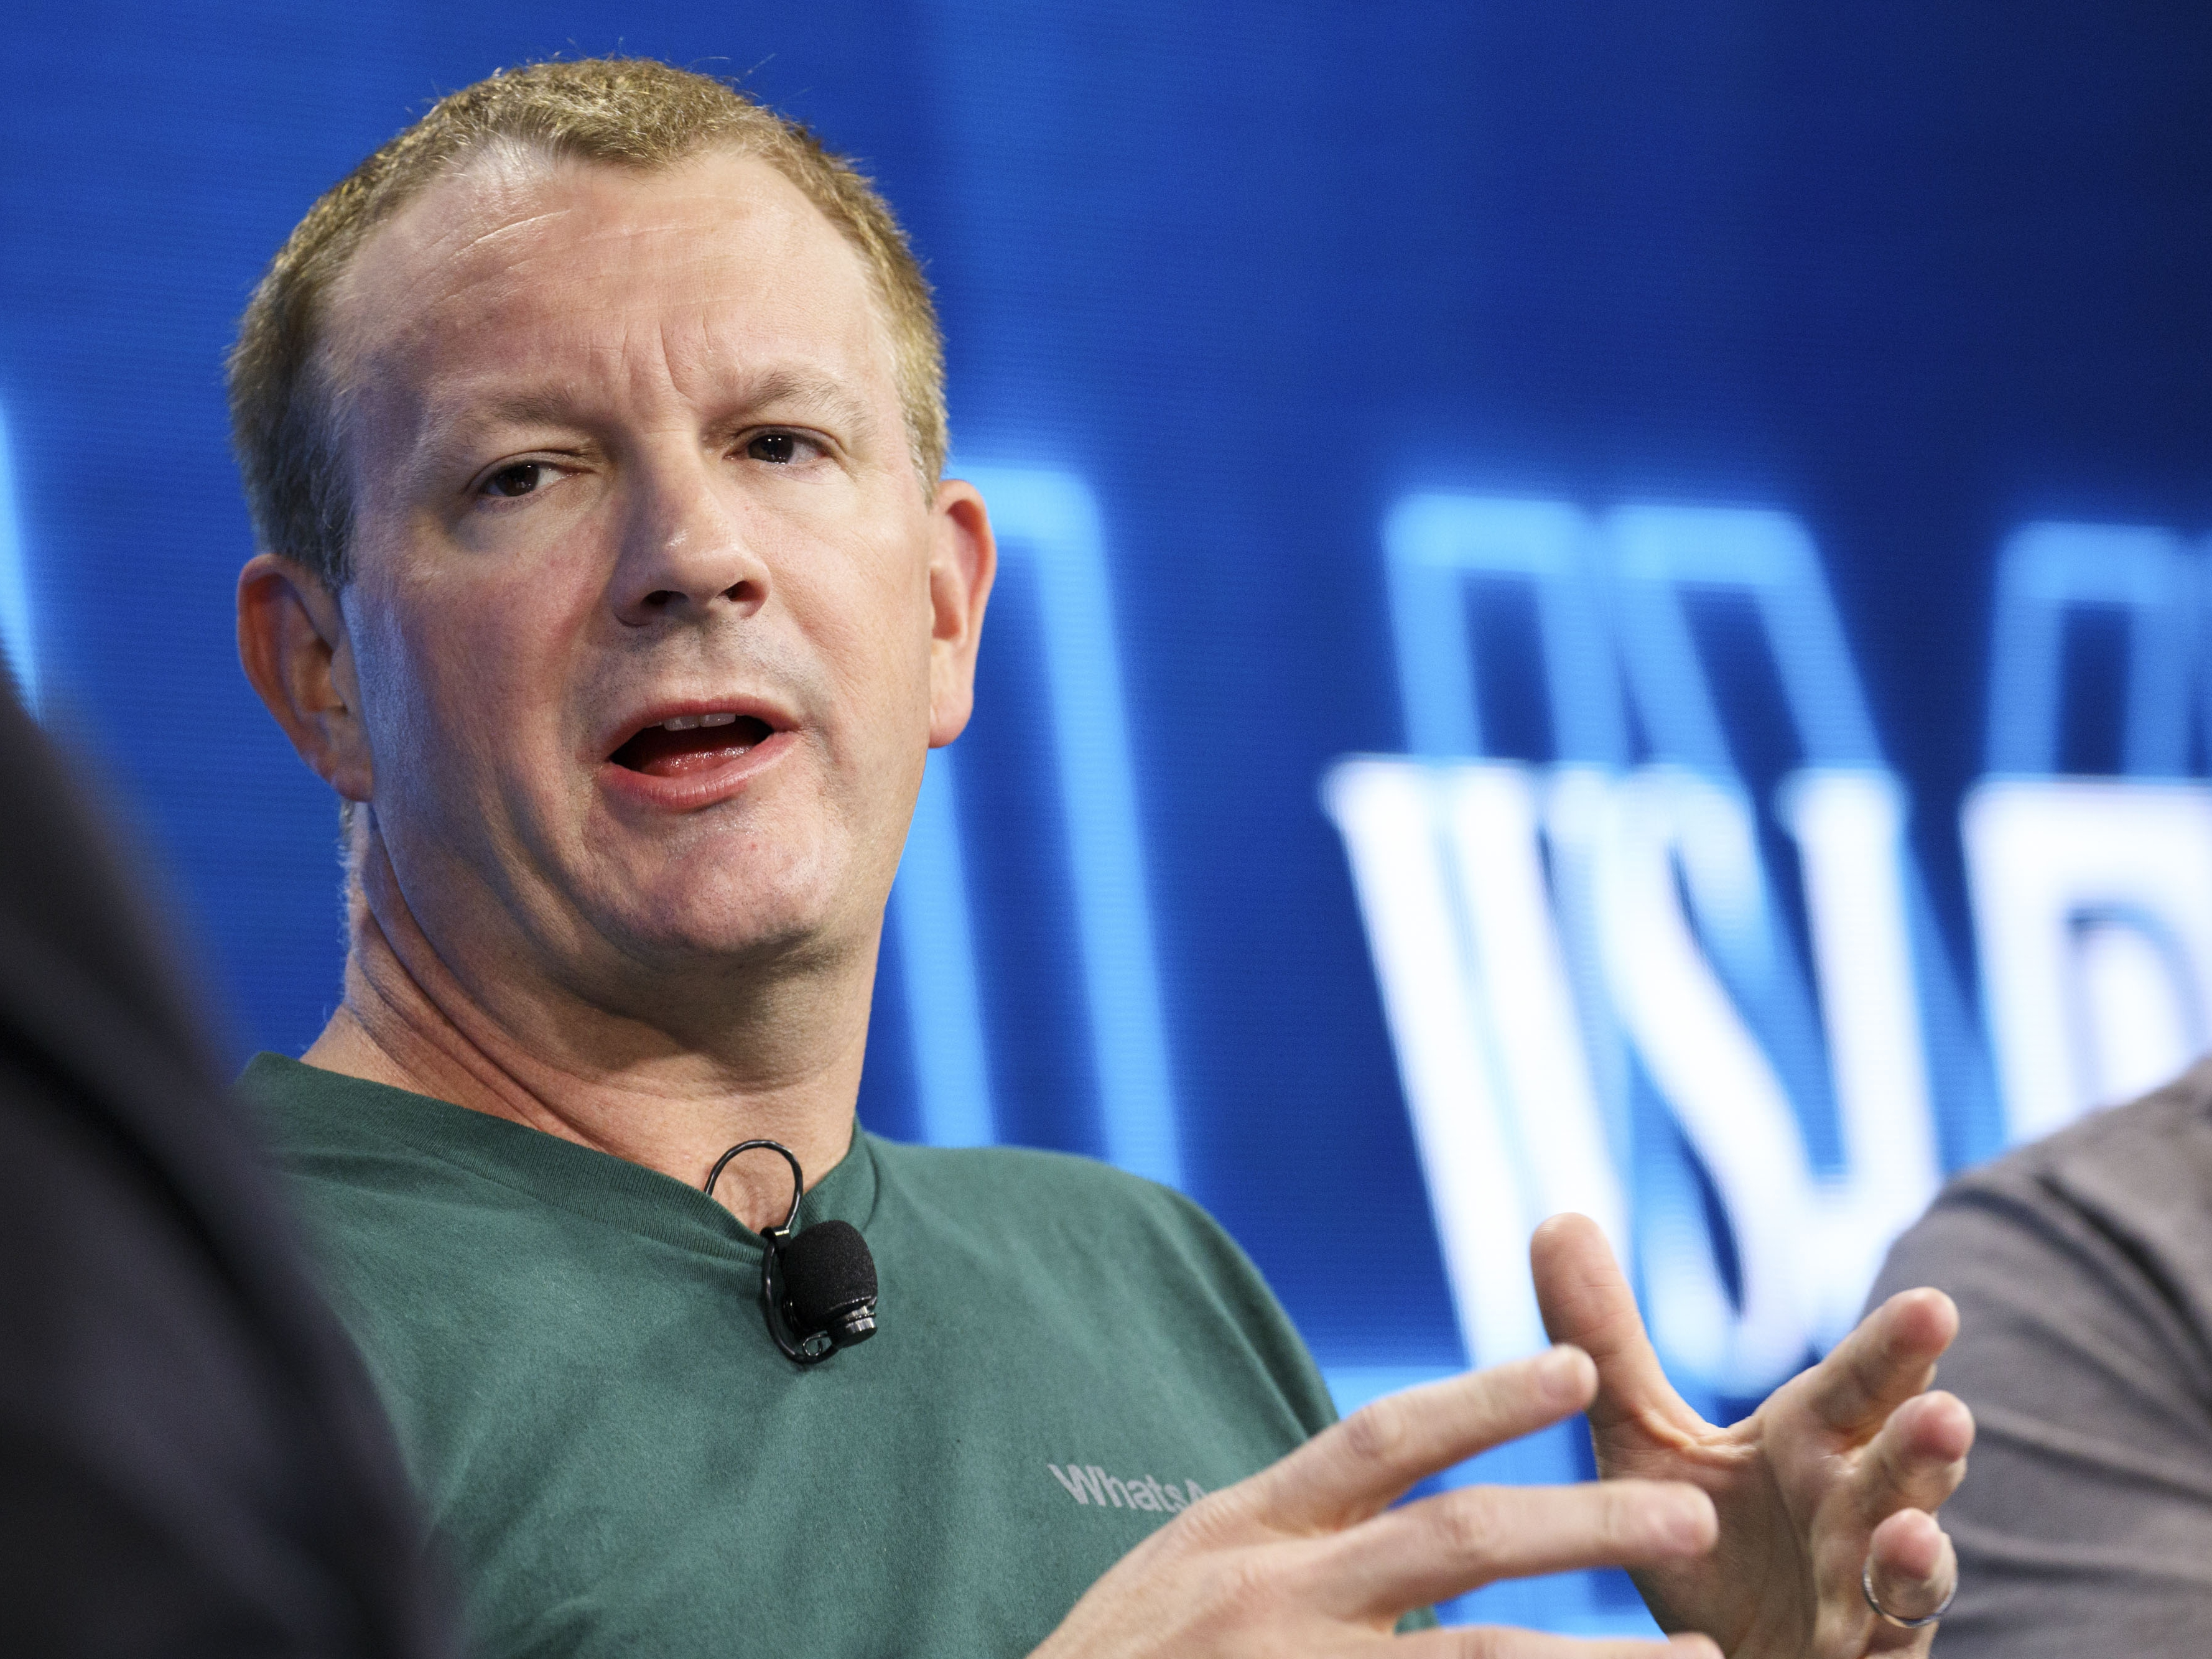 WhatsApp founder, Brian Acton, says Facebook used him to get